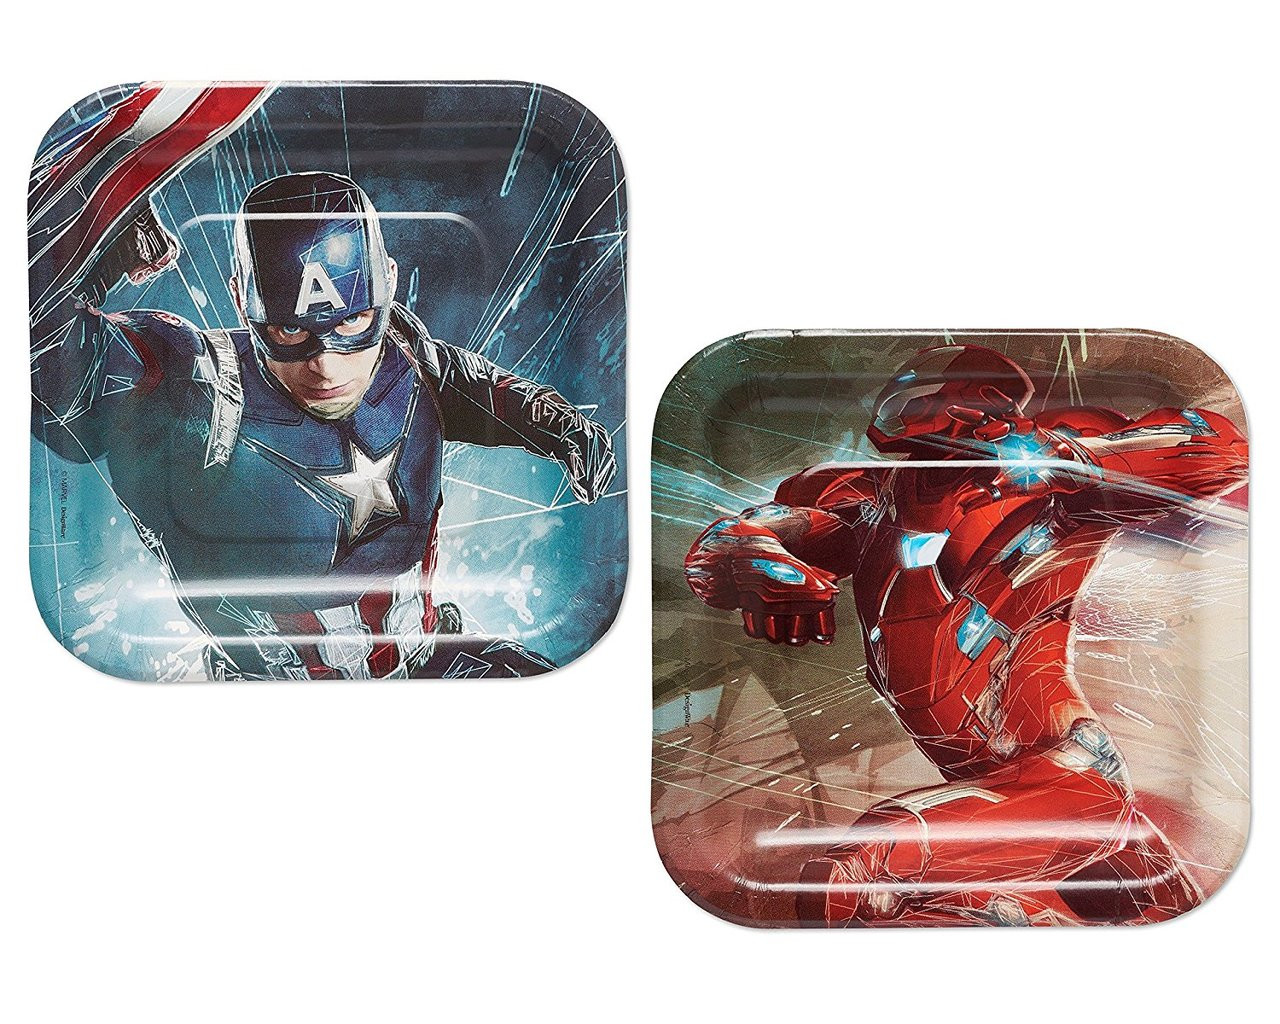 Captain America Small 7 inch Square Party Cake Dessert Plates - Civil War